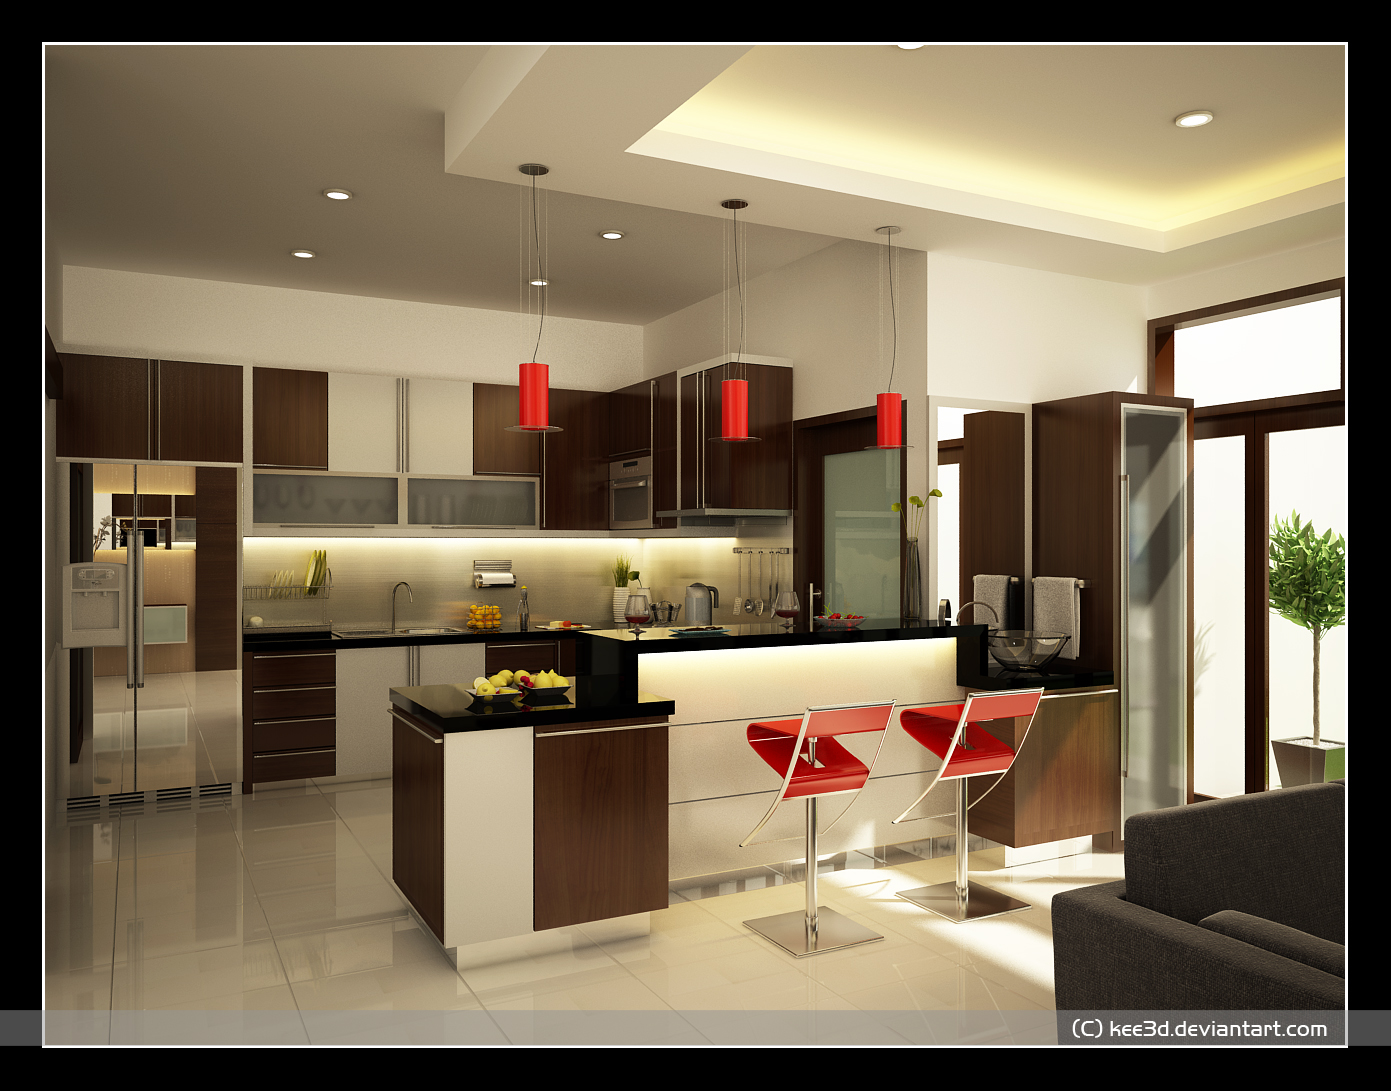 Kitchen design ideas for Kitchen remodel ideas